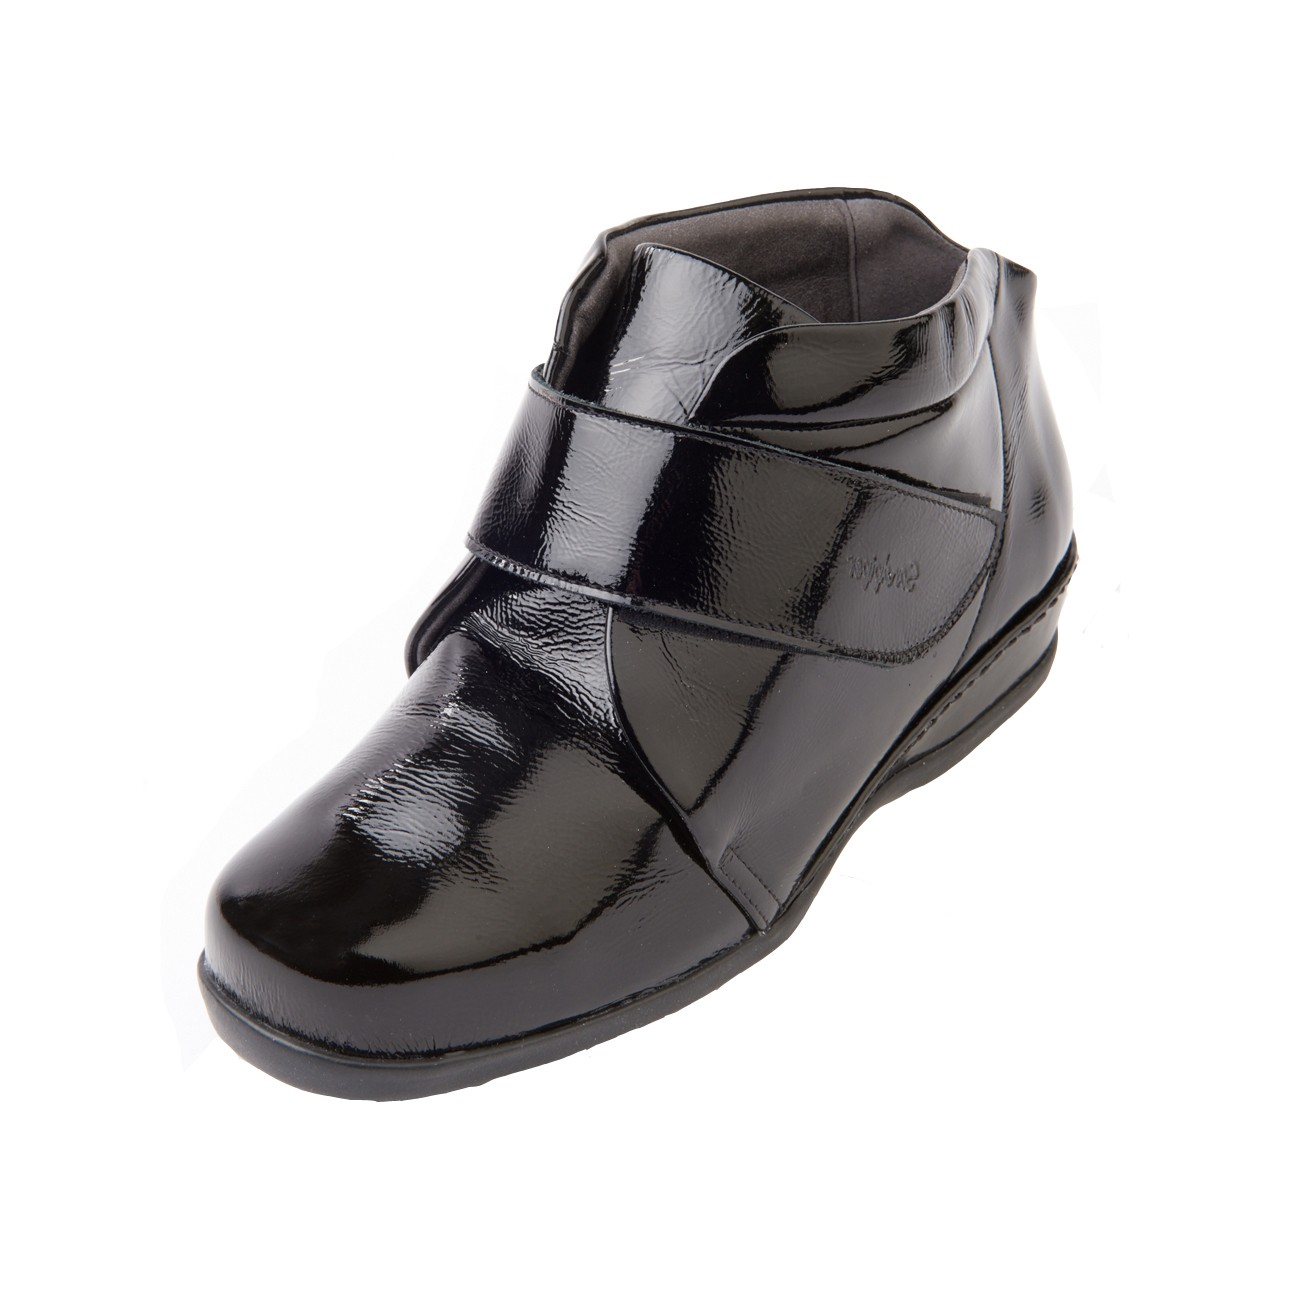 Bolton Extra Roomy Boot and wider fitting boots